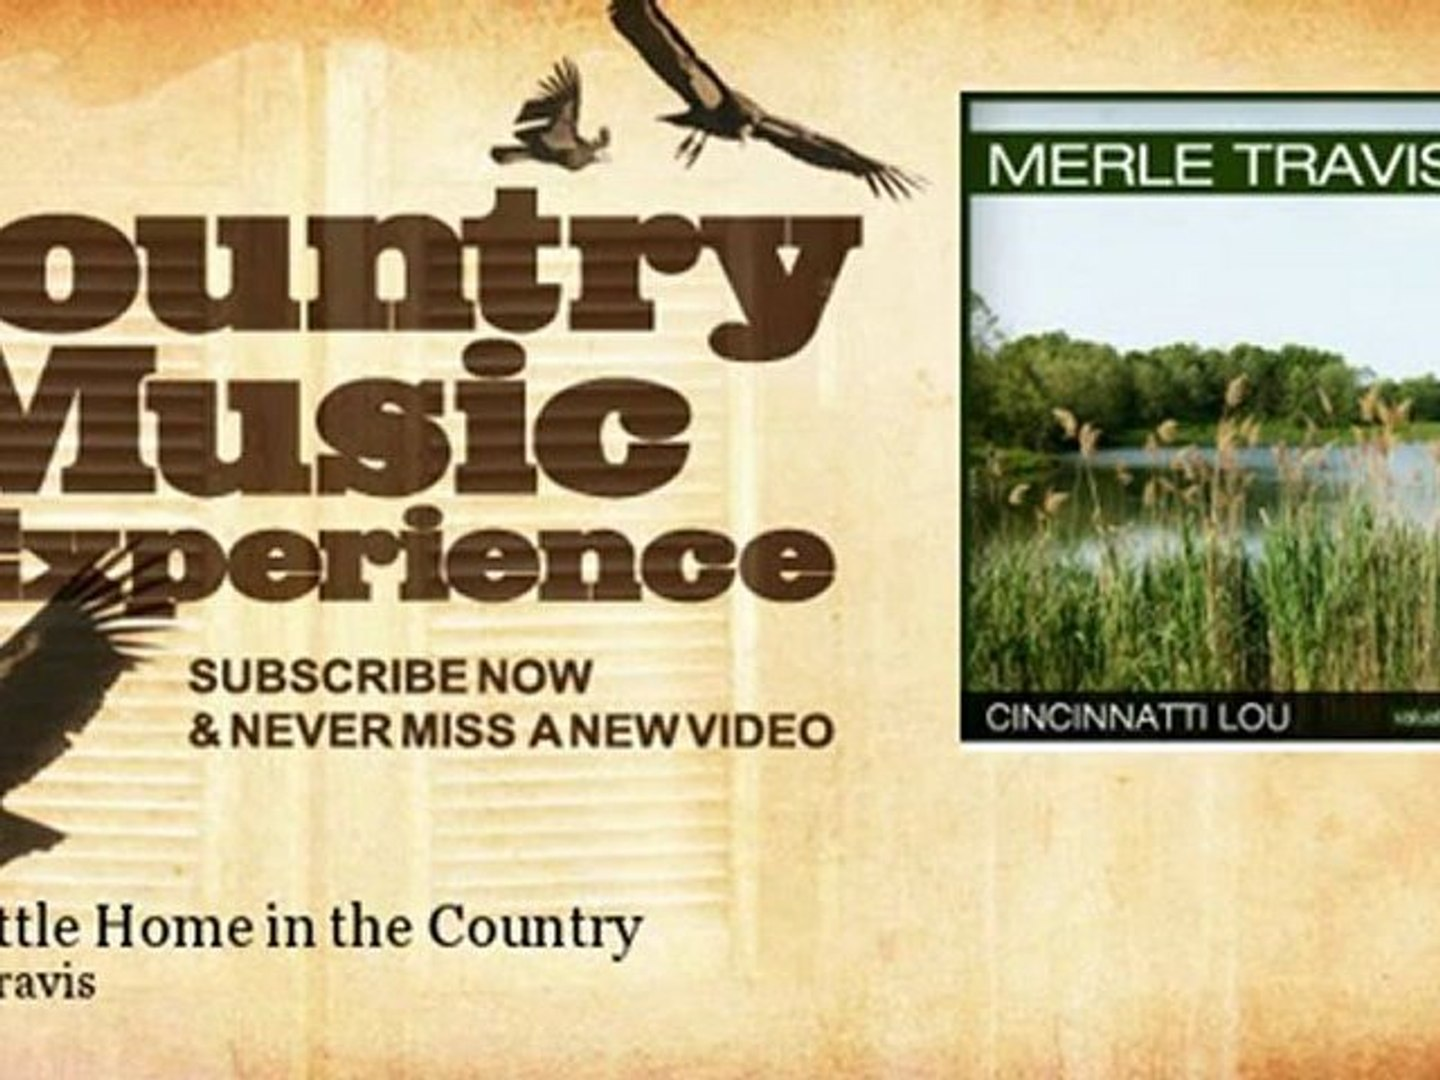 Merle Travis - Our Little Home in the Country - Country Music Experience